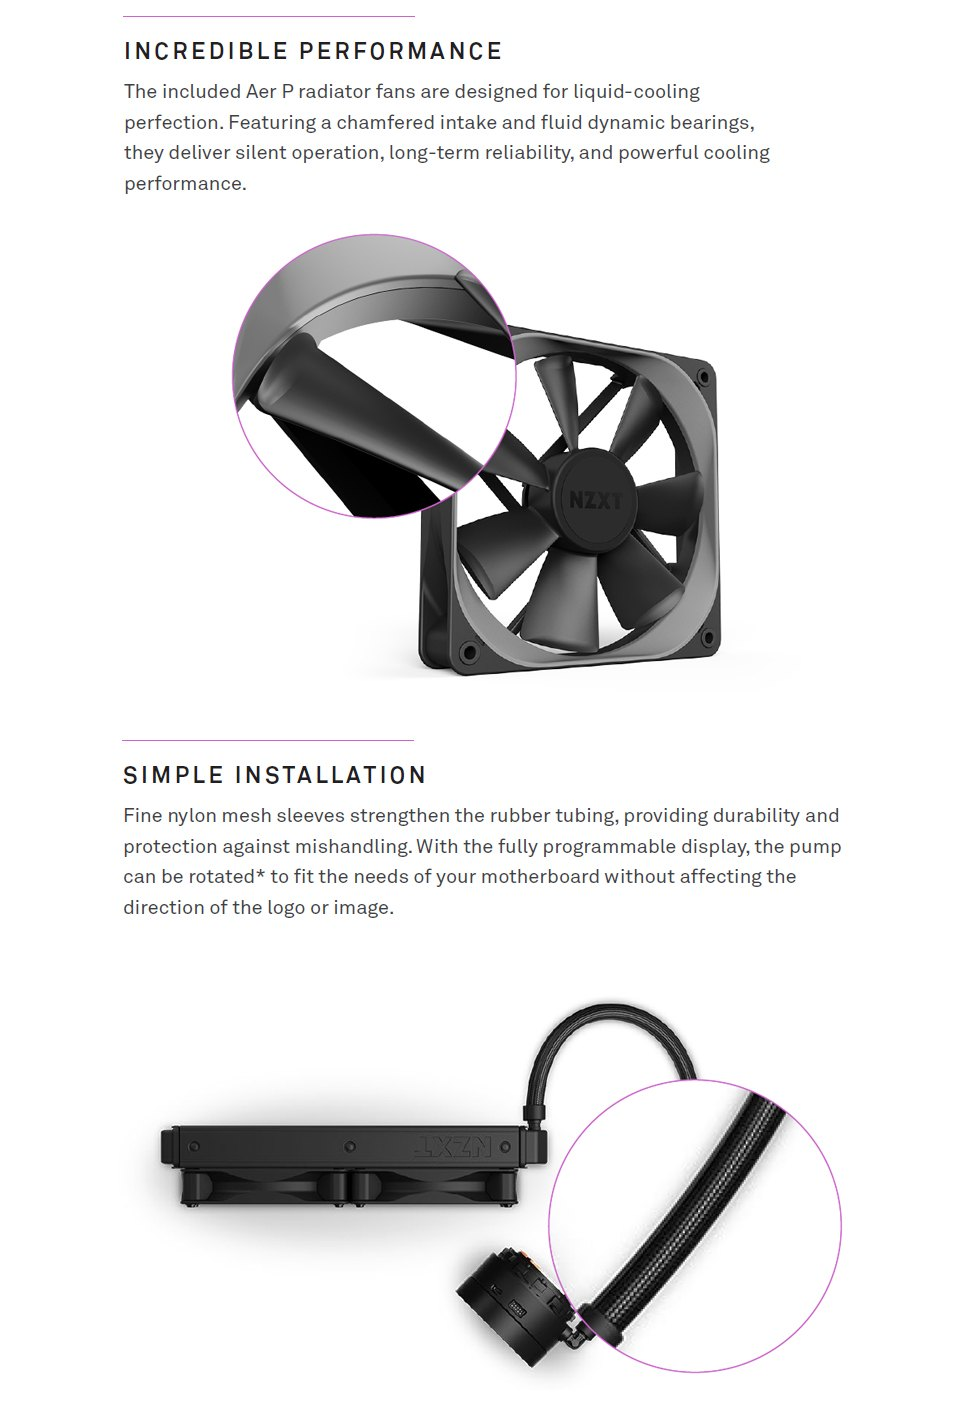 NZXT Kraken Z63 280mm AIO Liquid CPU Cooler features 3